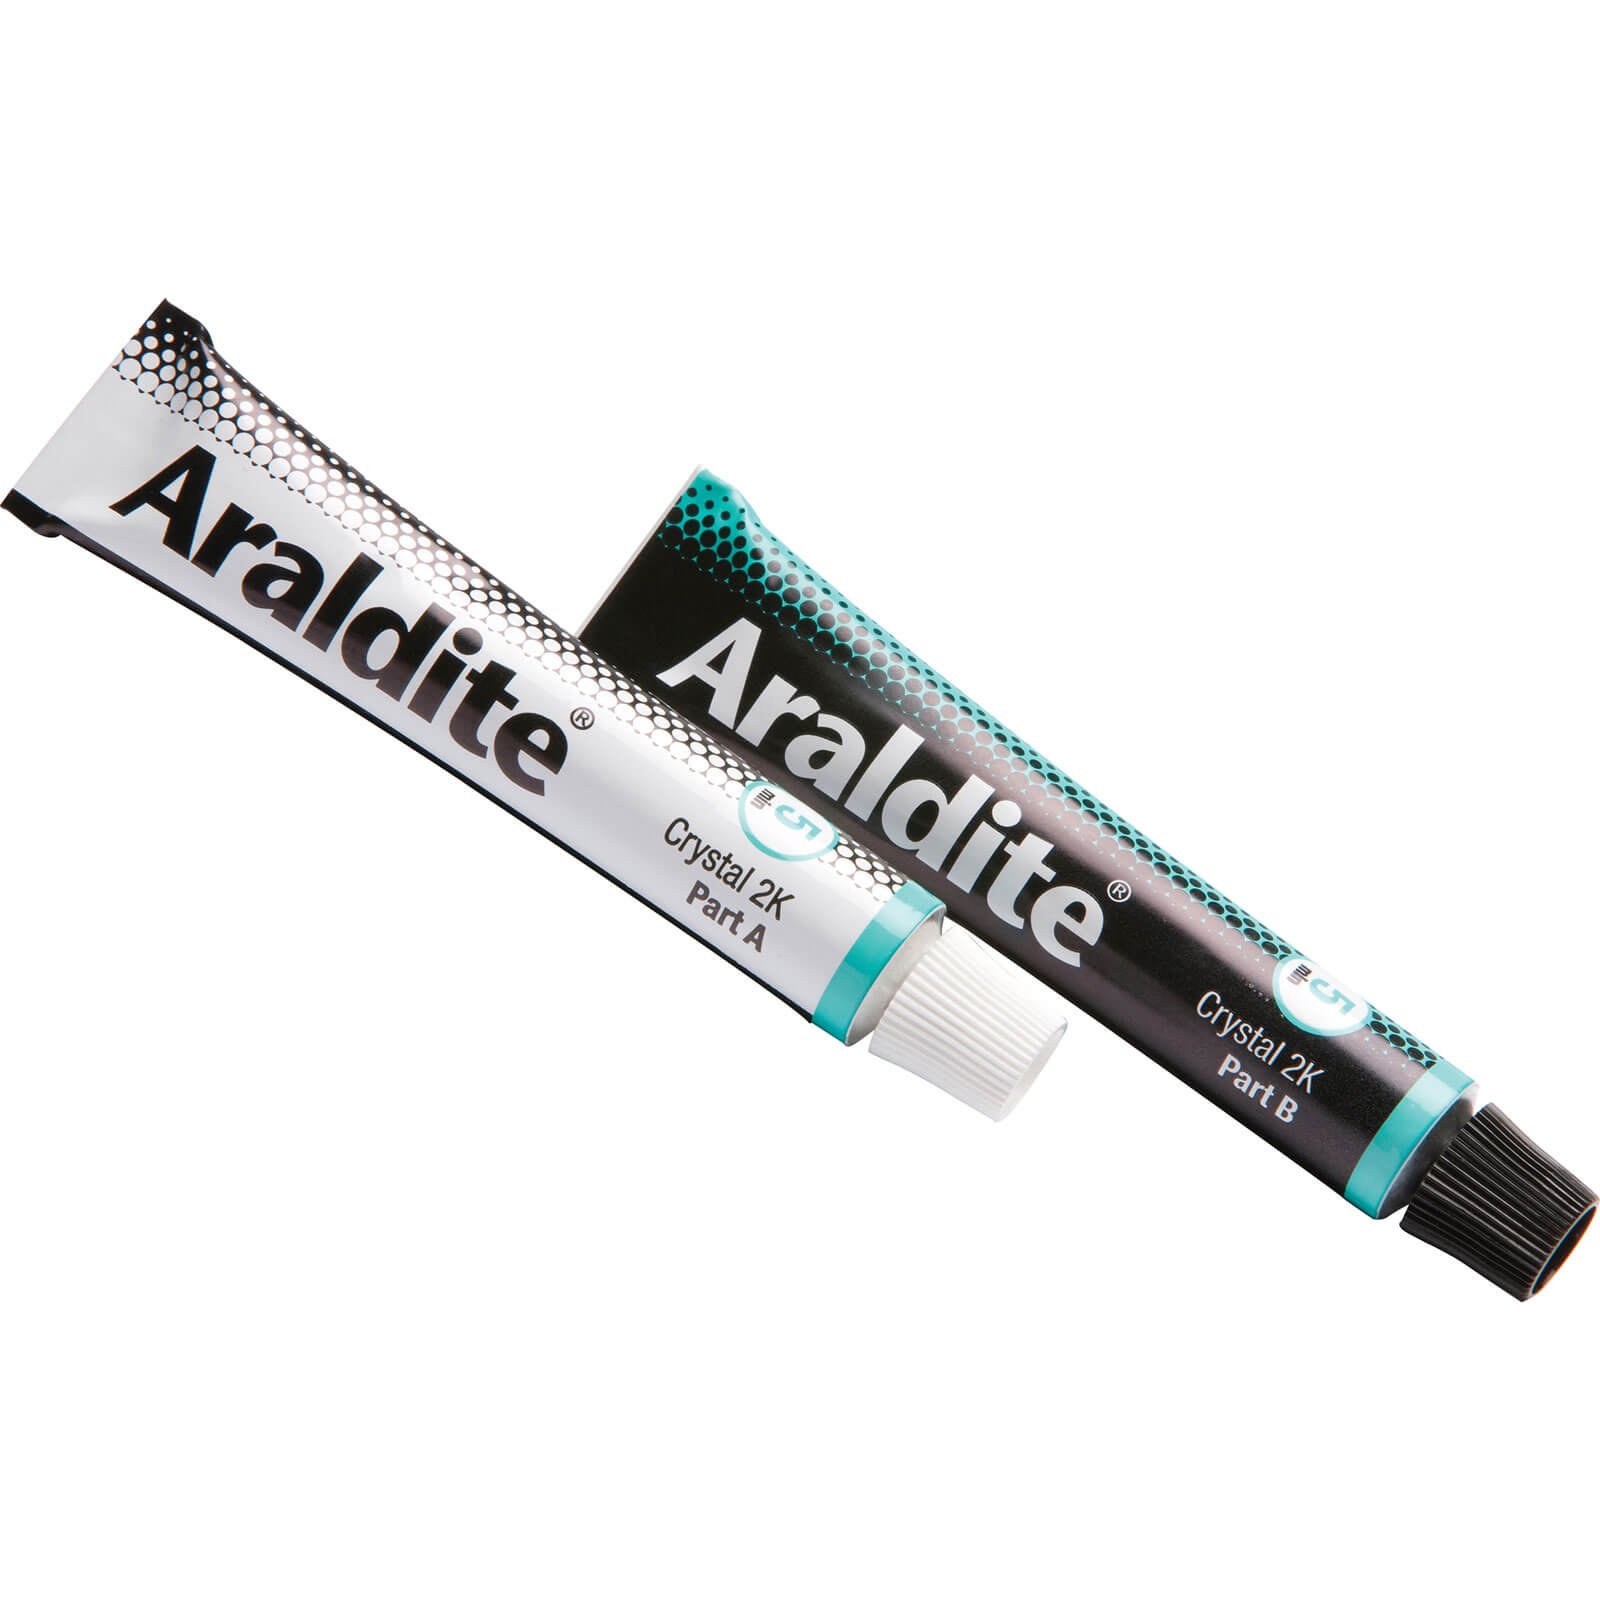 Araldite Crystal Two Component Adhesive